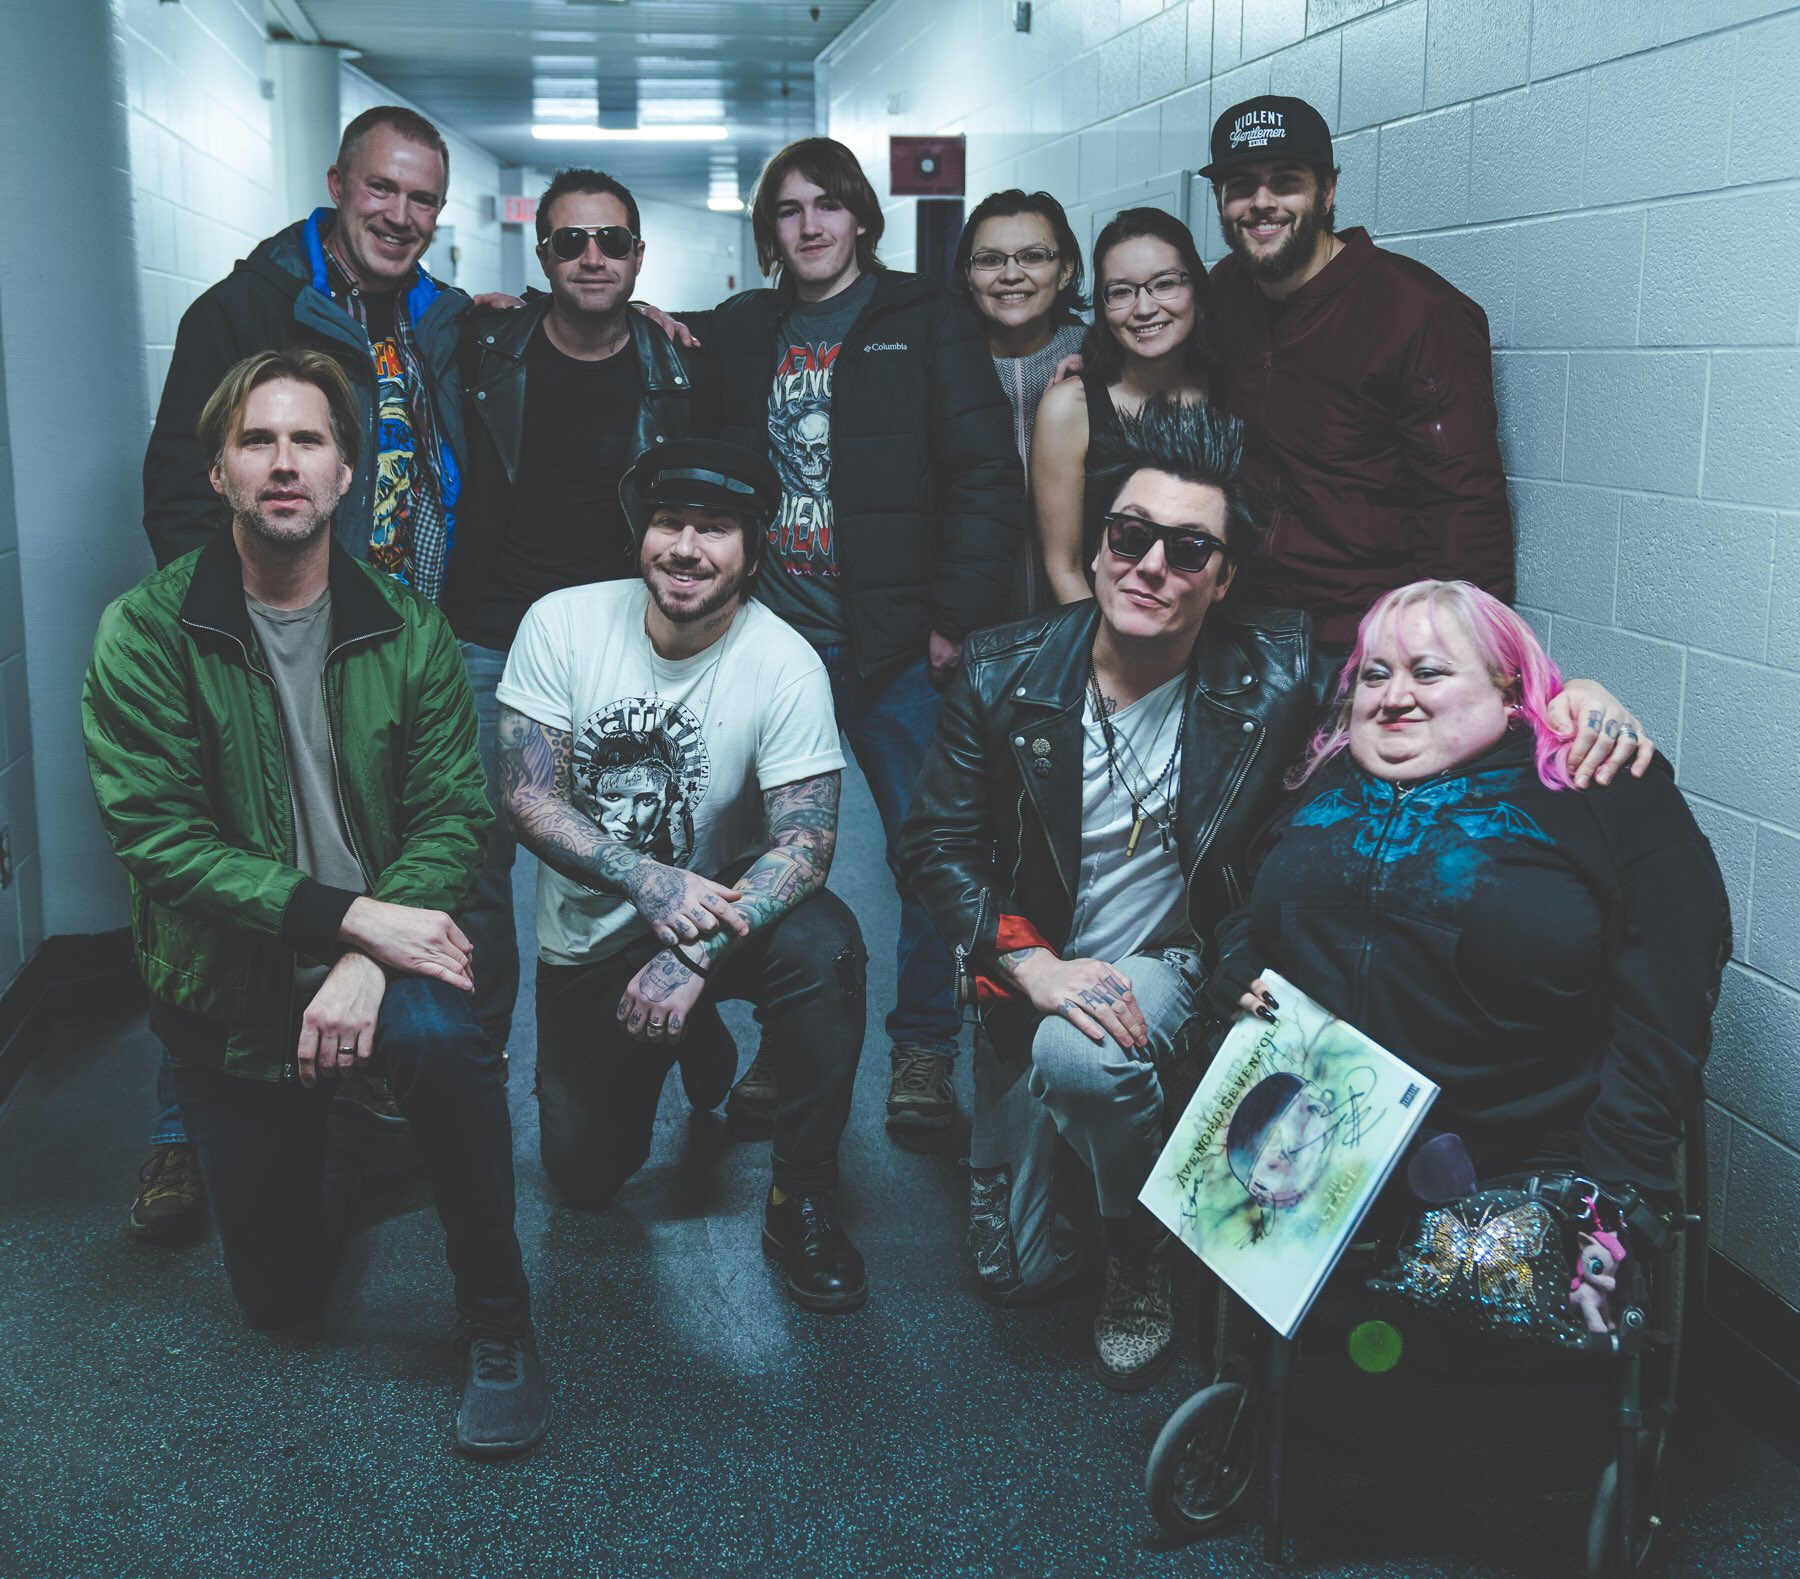 #DeathbatNation Meet and Greet - Saskatoon #thestageworldtour #avengedsevenfold ��:@rafacore https://t.co/47zz5NBd3U